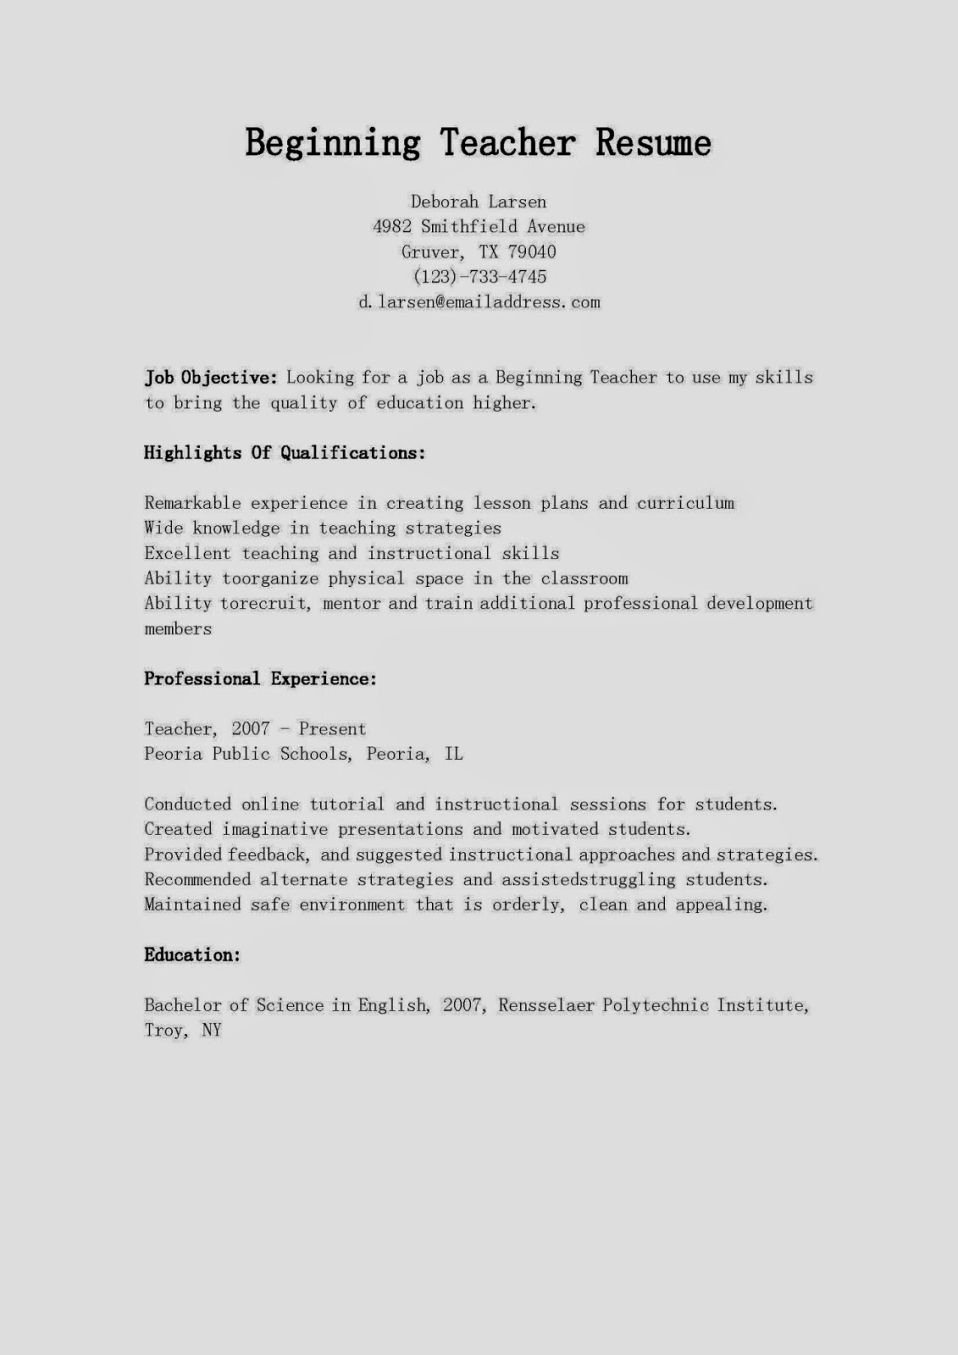 Example A Beginner Teacher Resume